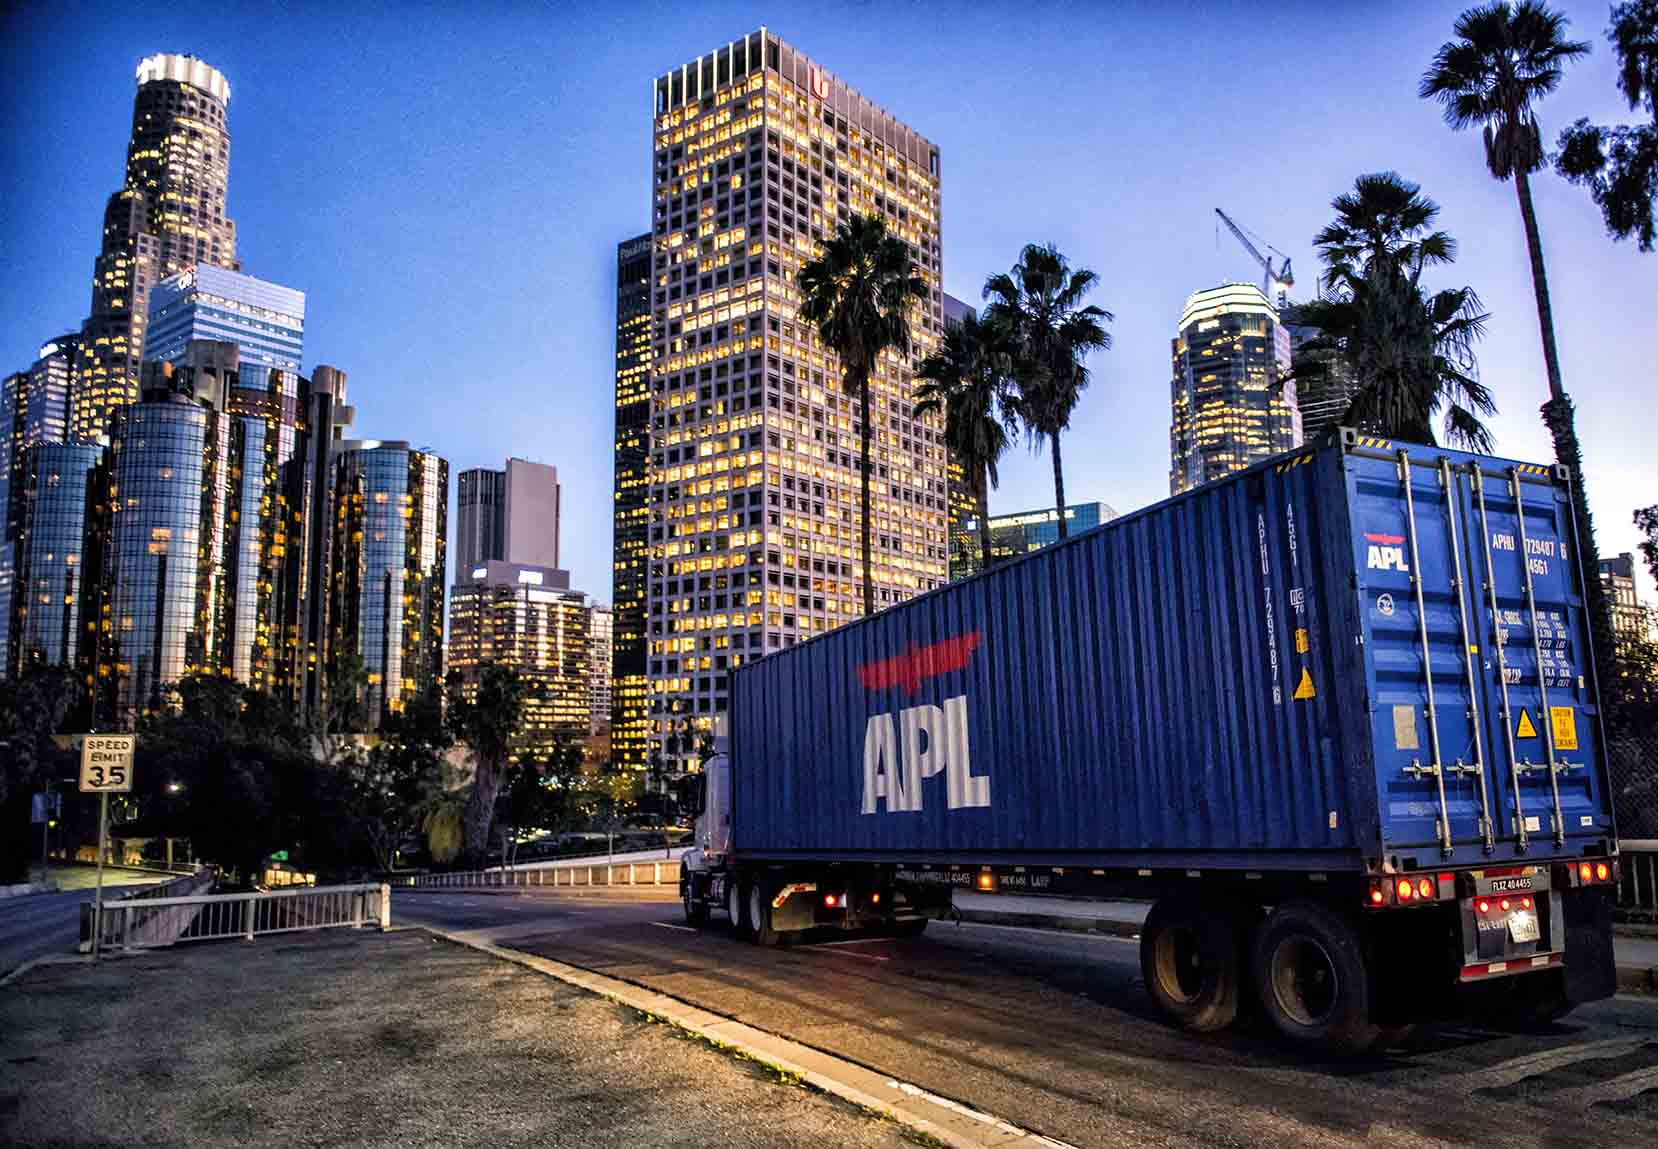 Standard Container - APL container being transported to Downtown Los Angeles